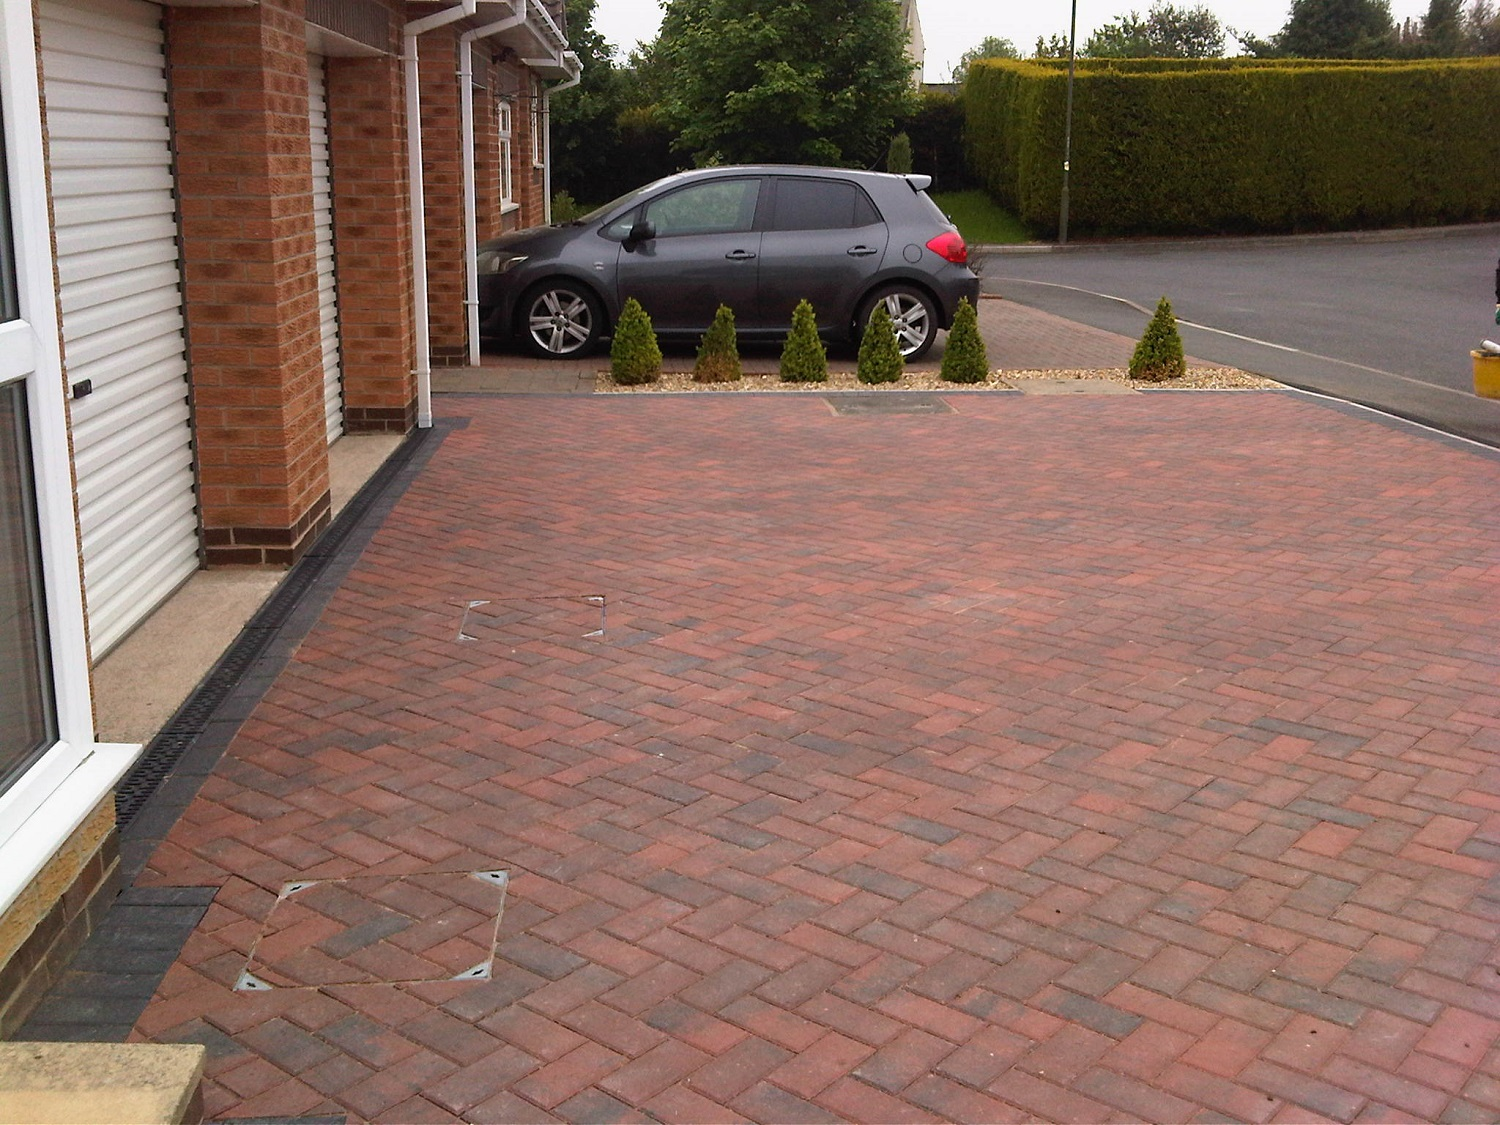 C18 Plaspave Brindle Block Paving Driveway at Walton in Chesterfield